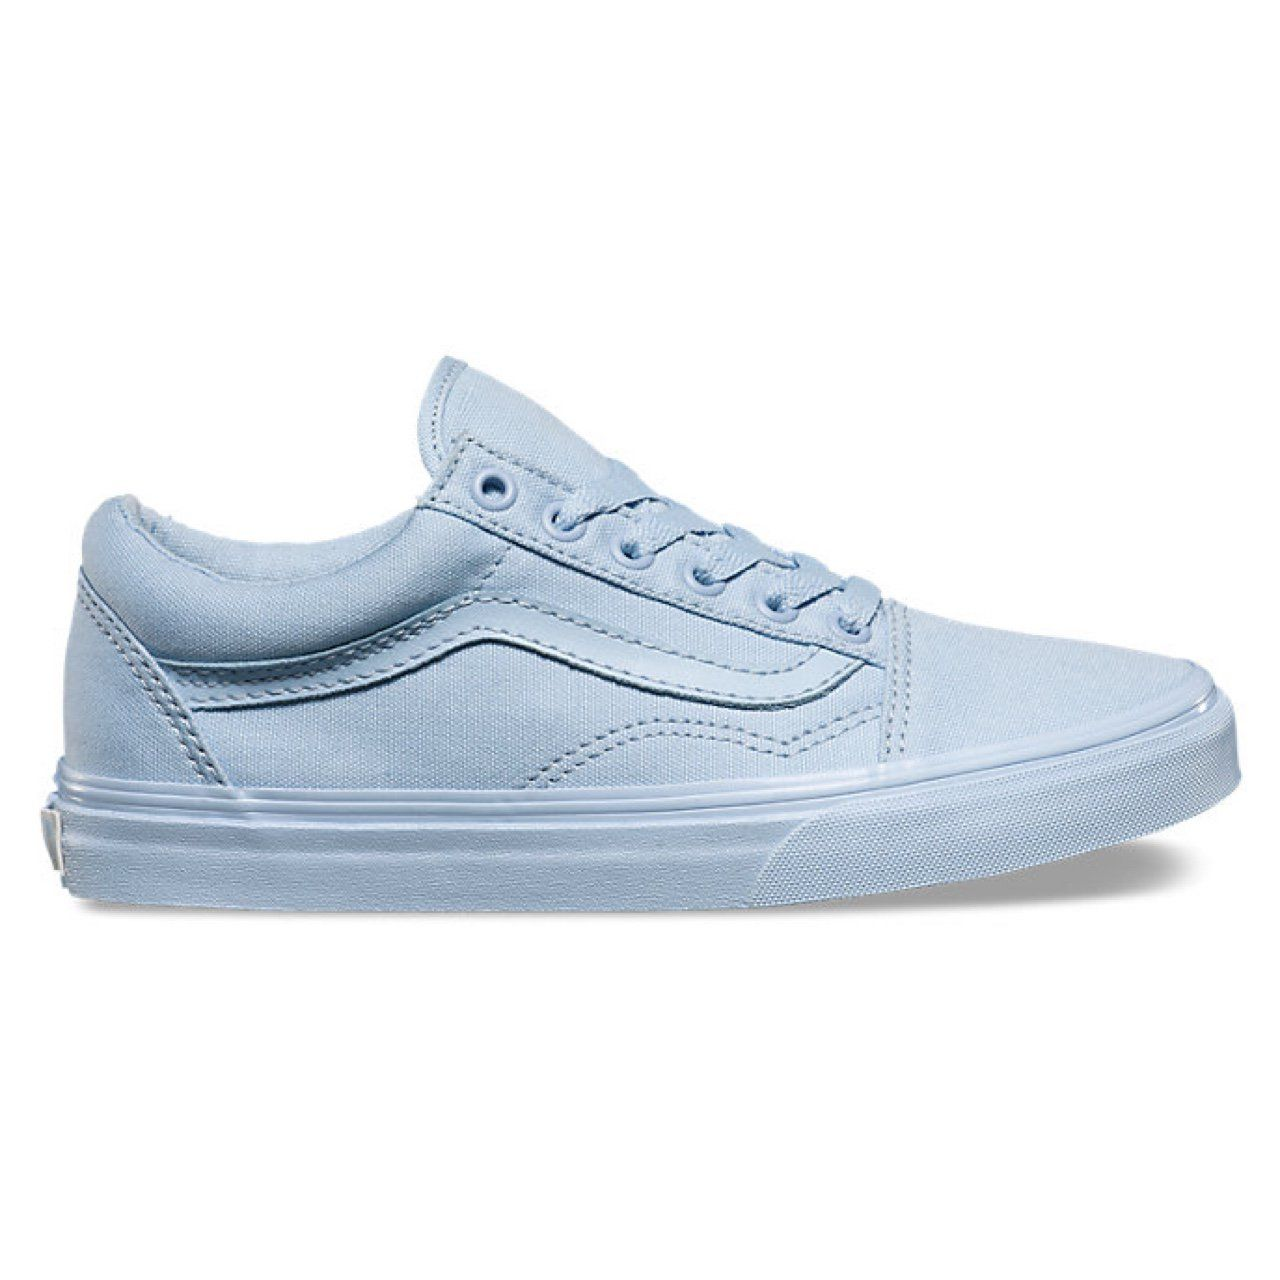 47a222a427b 💙☁️Mono Vans Old Skool in